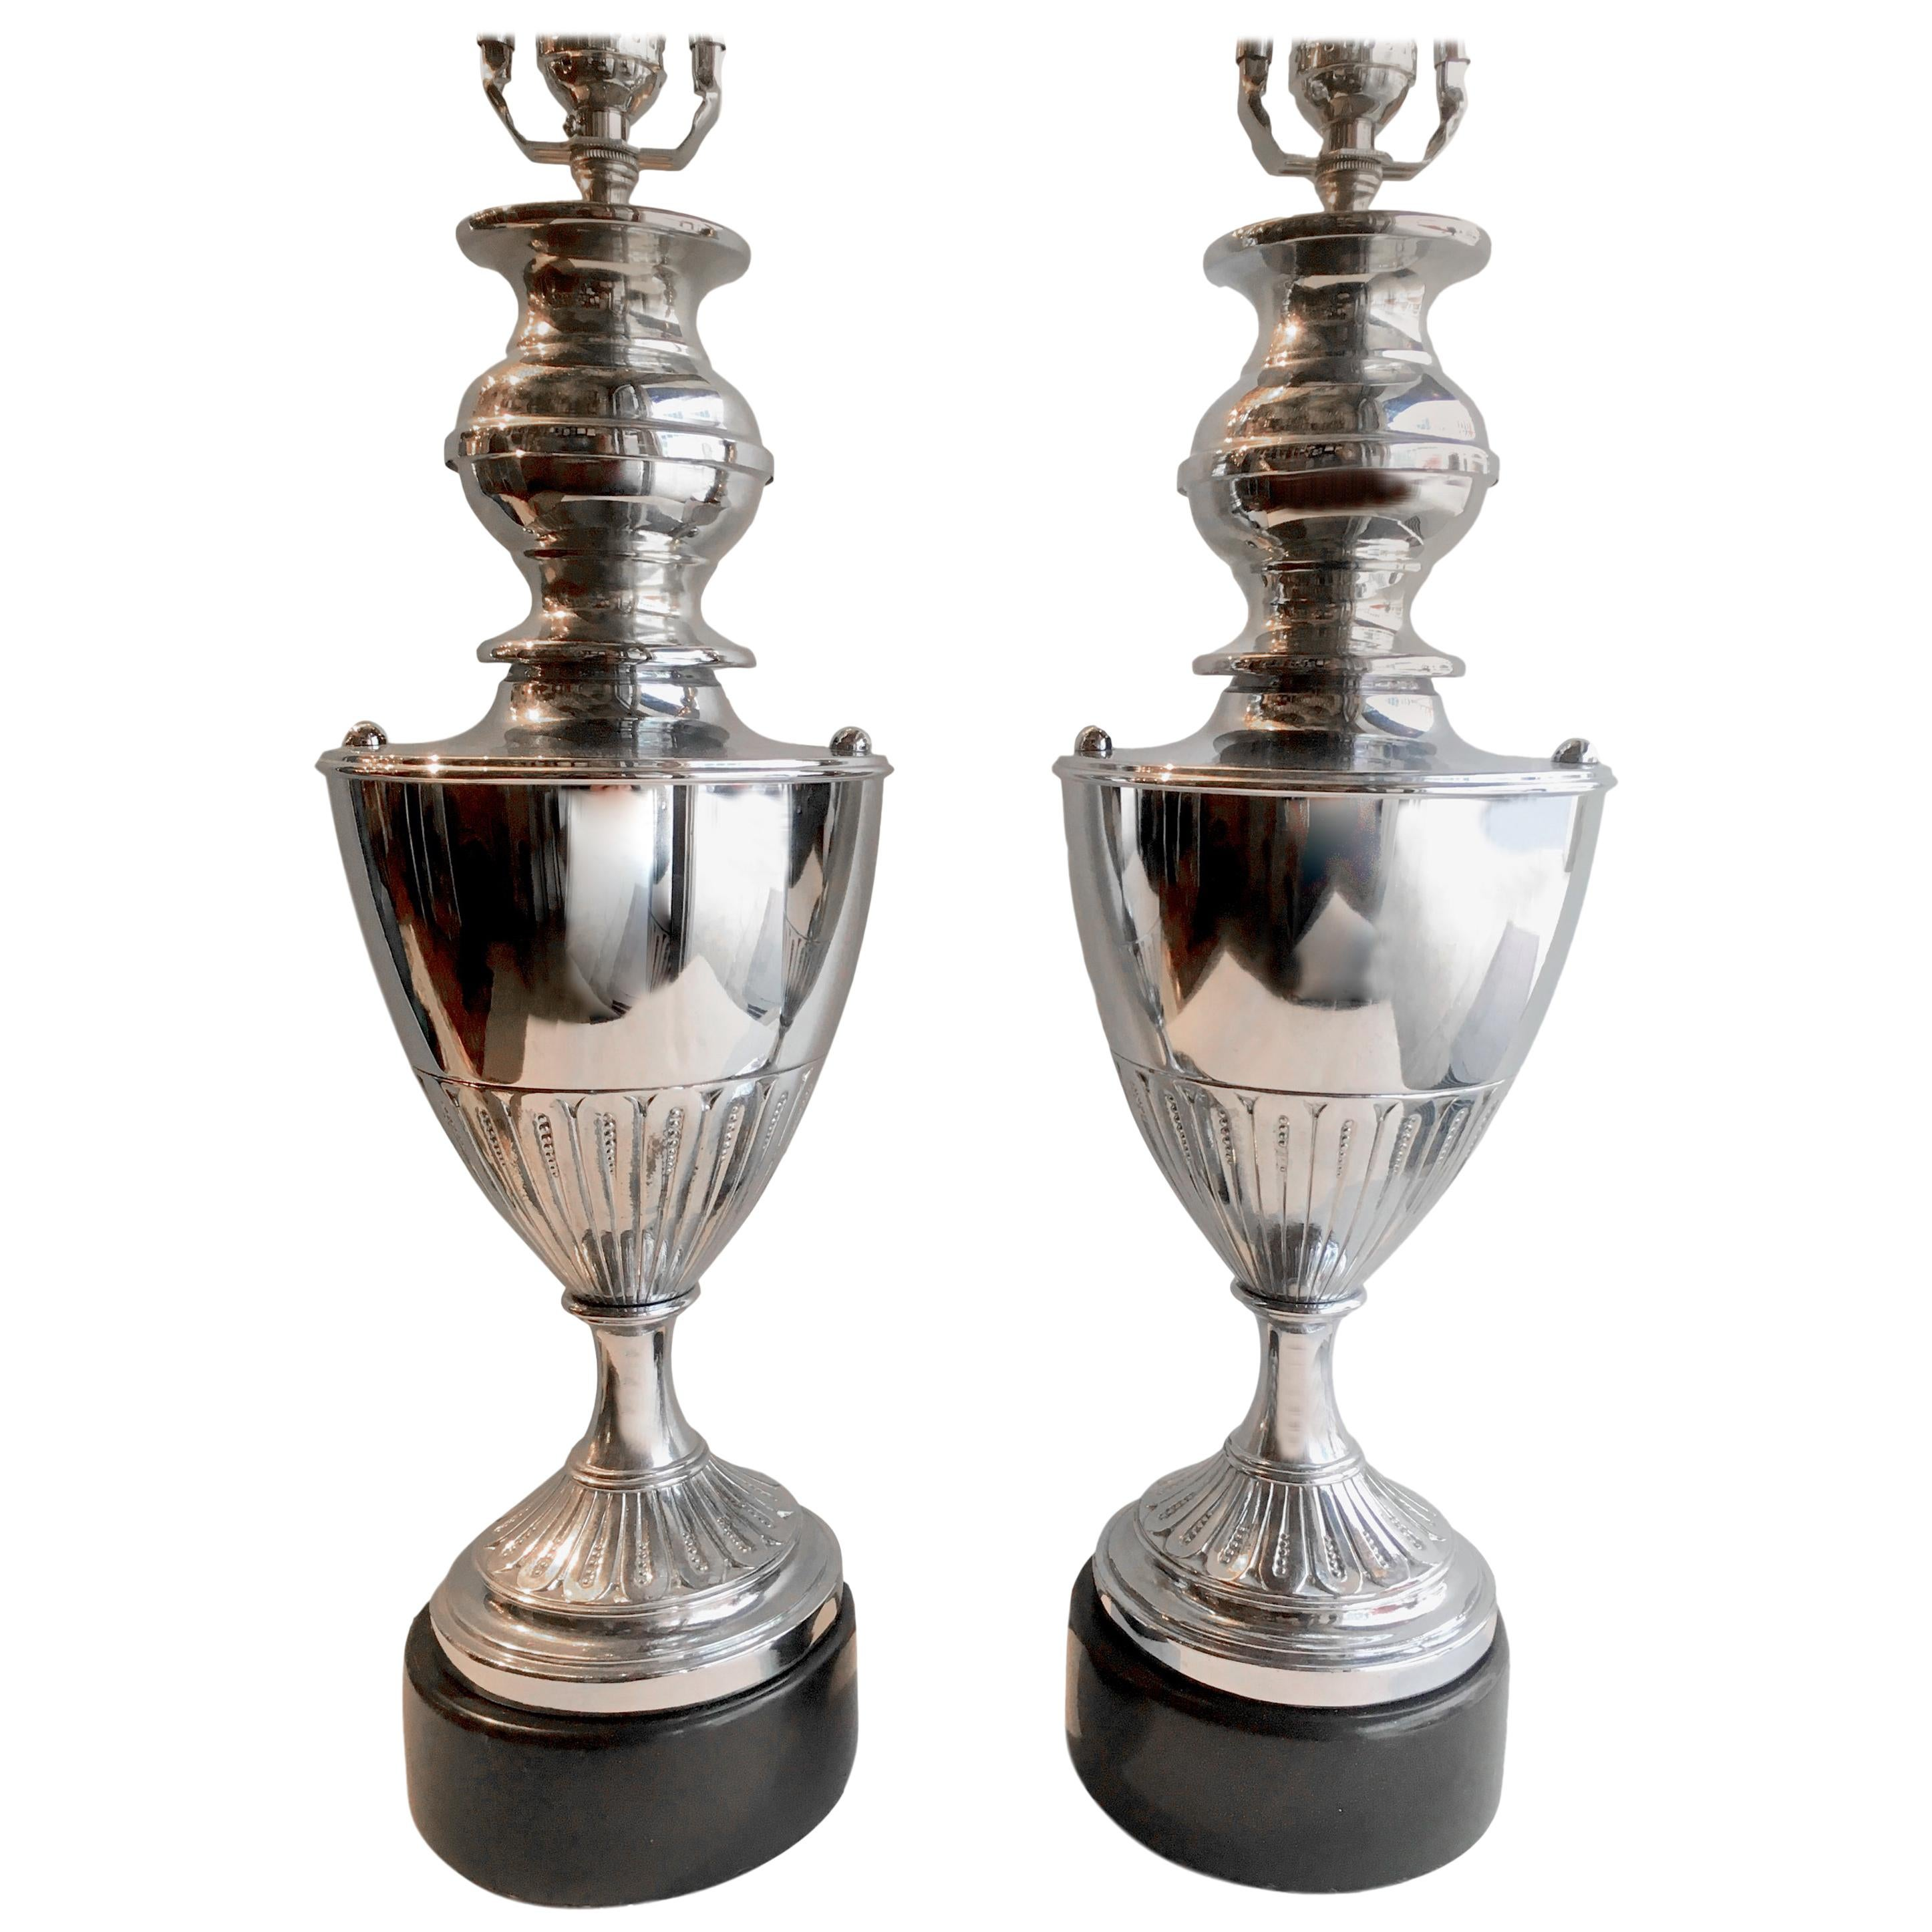 Pair of Nickel-Plated Table Lamps